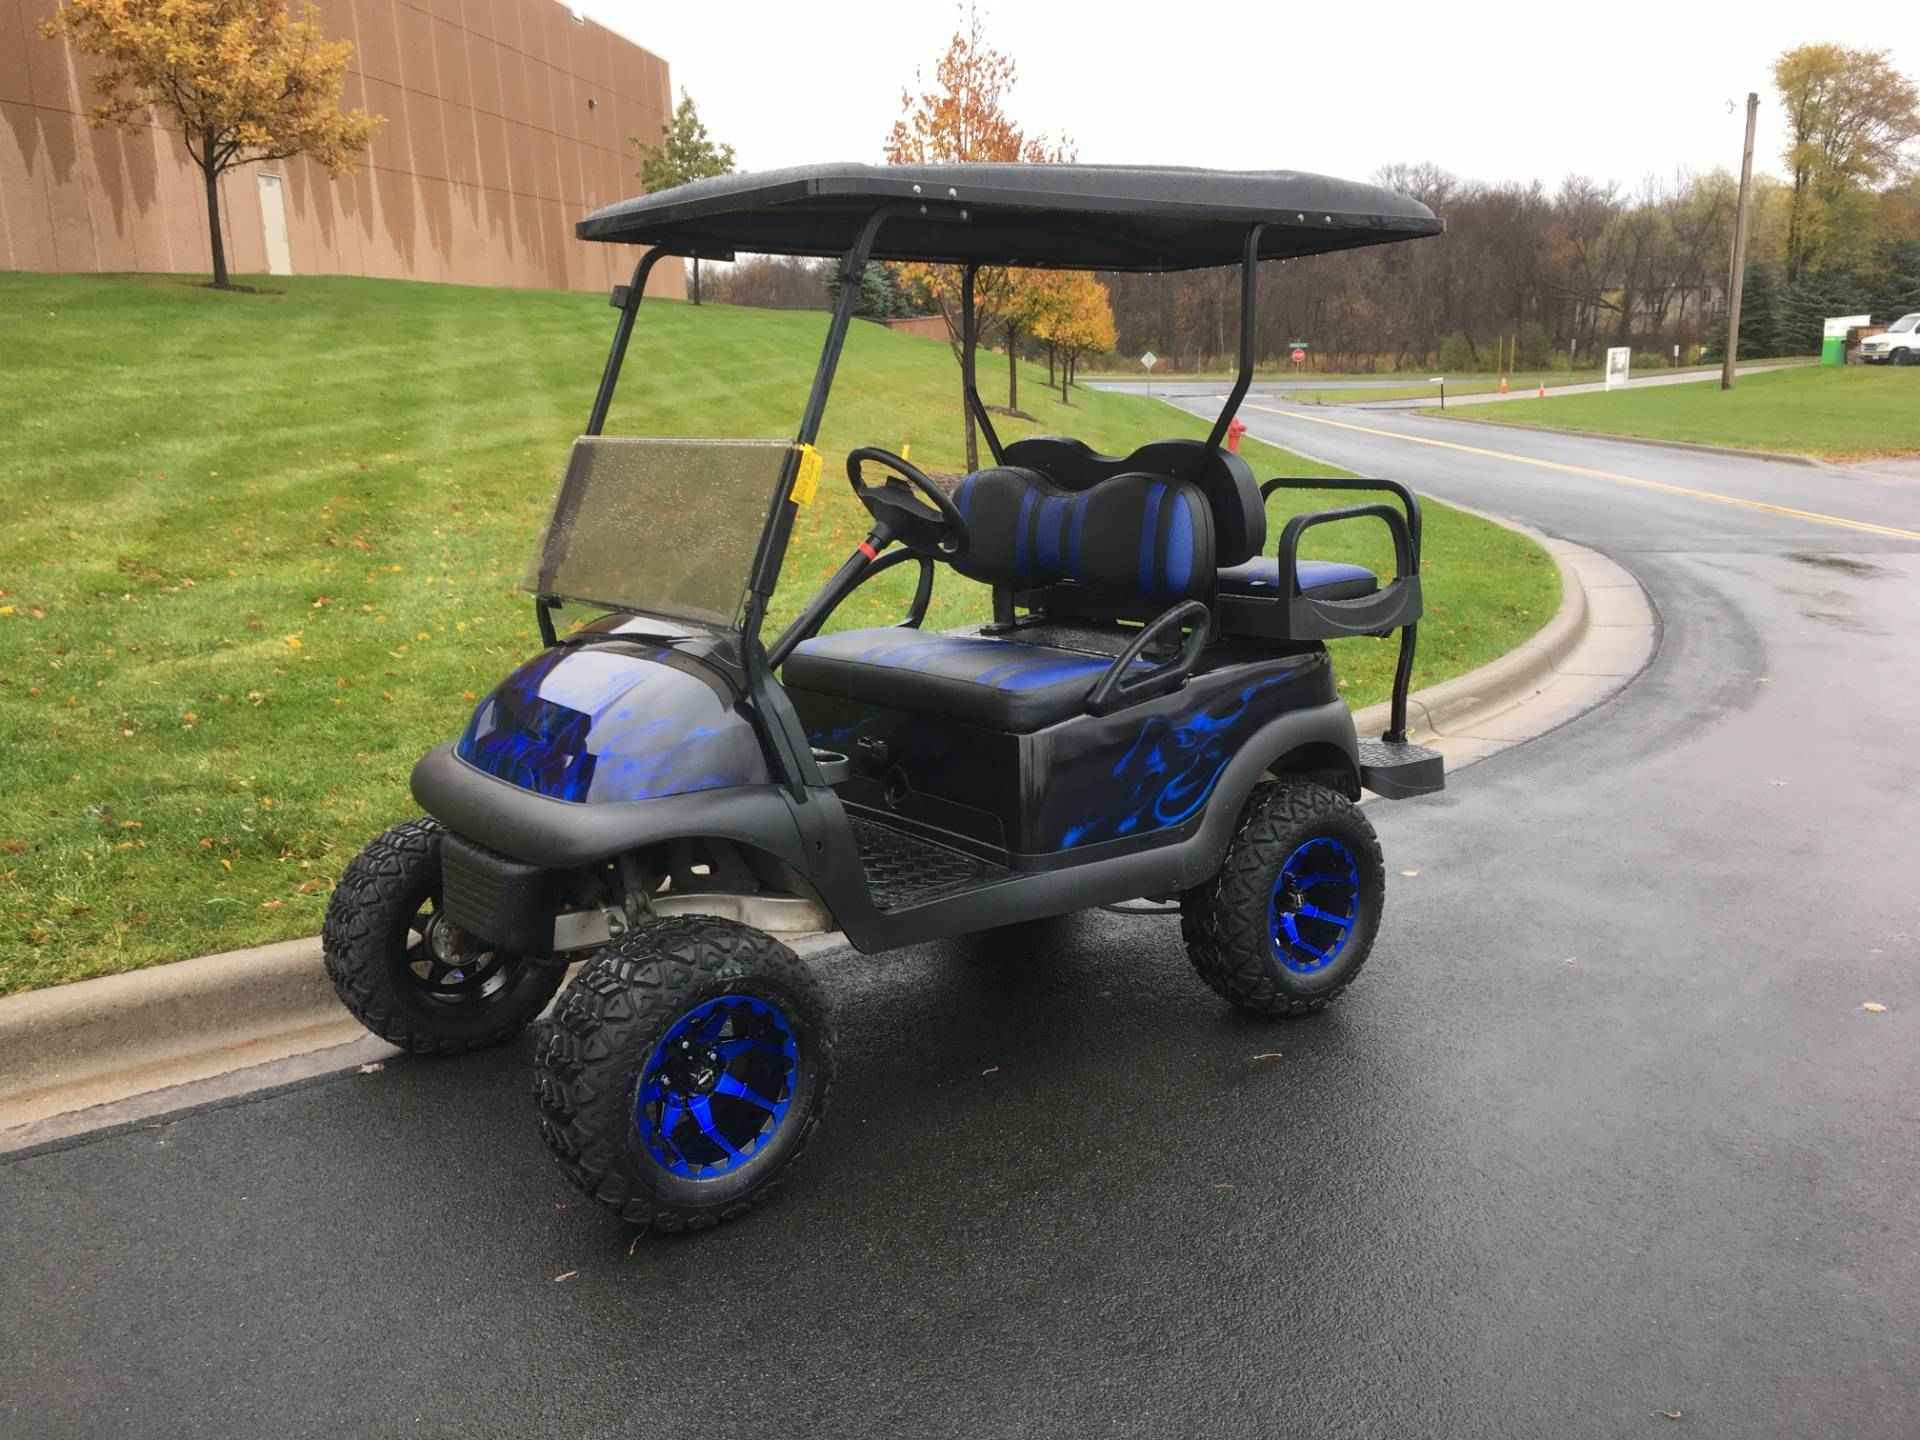 Used 2012 Club Car Precedent Atvs For Sale In Minnesota On